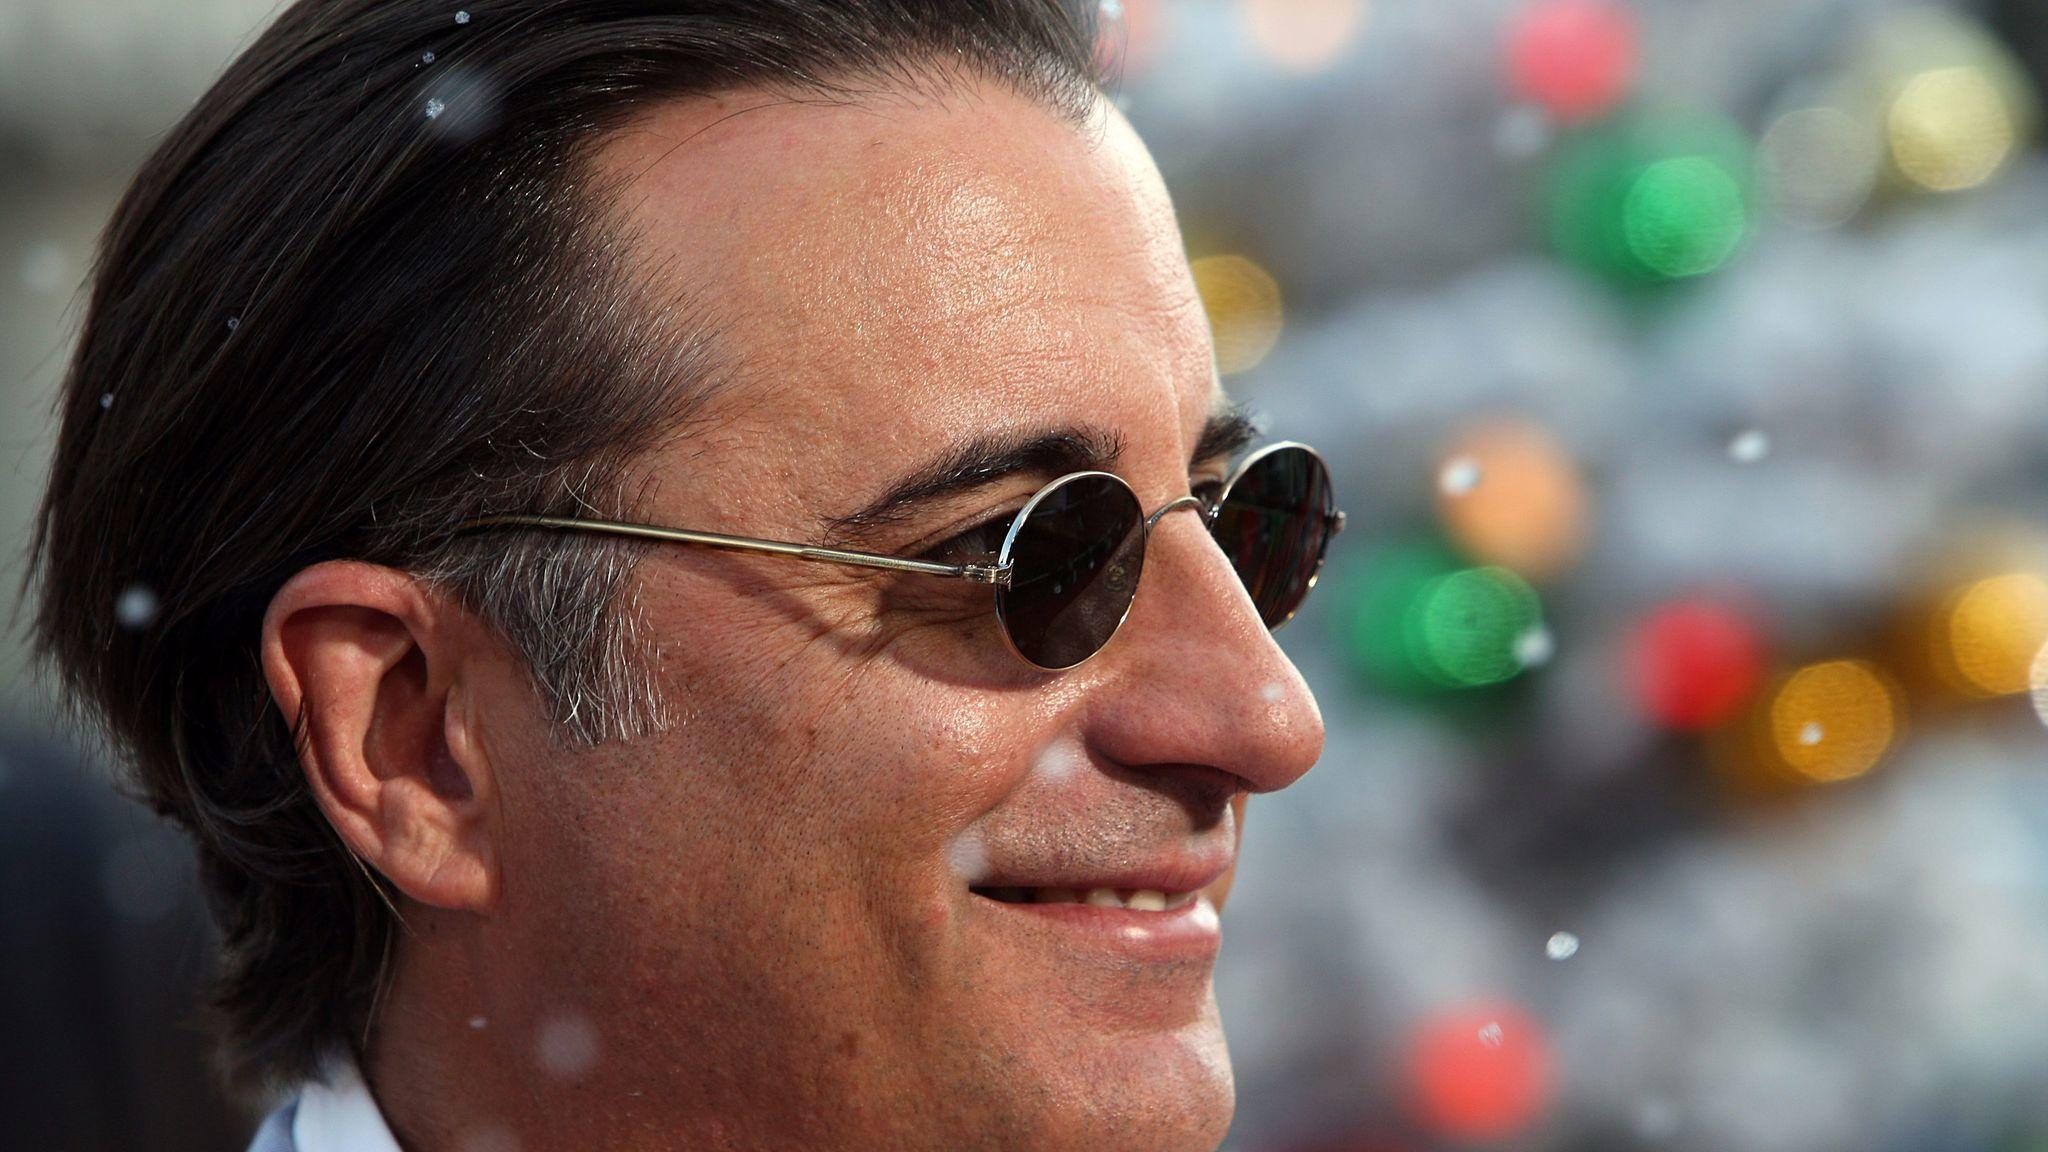 Miami's Andy Garcia cast in 'Book Club' movie about 'Fifty Shades of